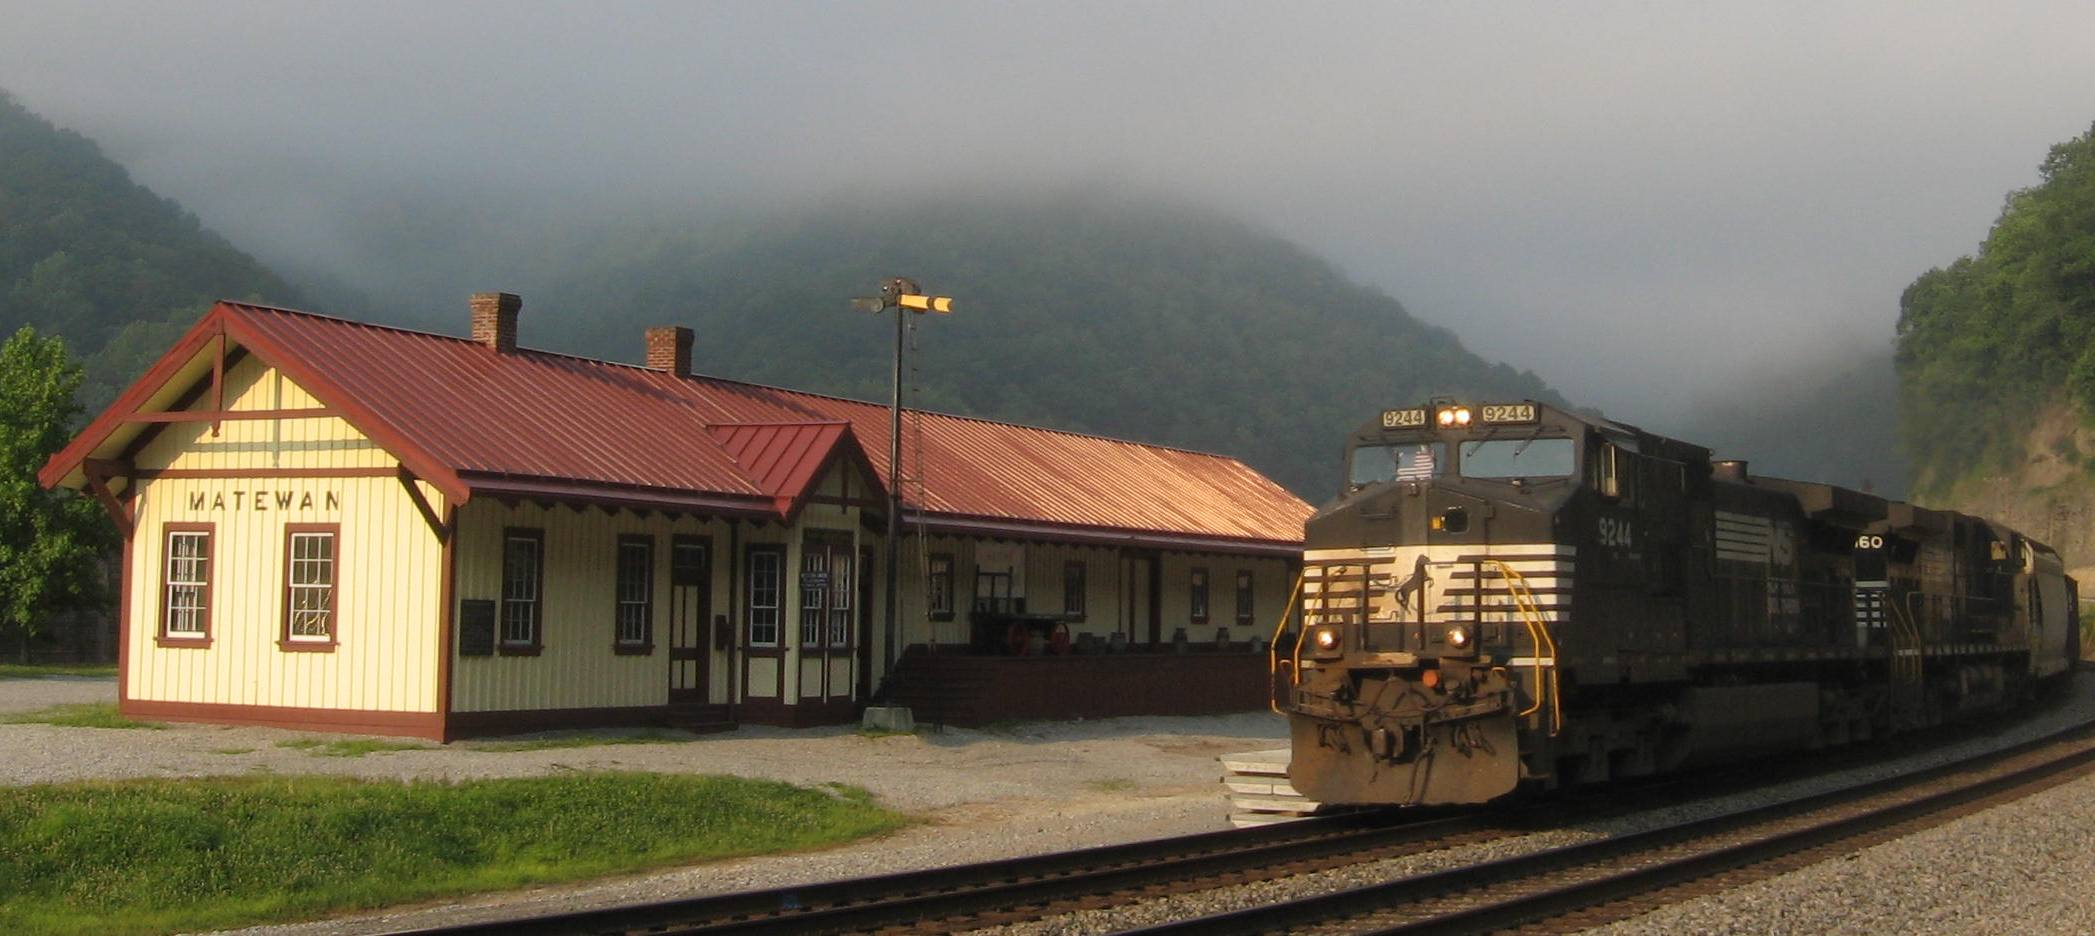 The museum is located inside a replica of Matewan Station from the era of steam-powered trains and the coal boom of the early 20th century.